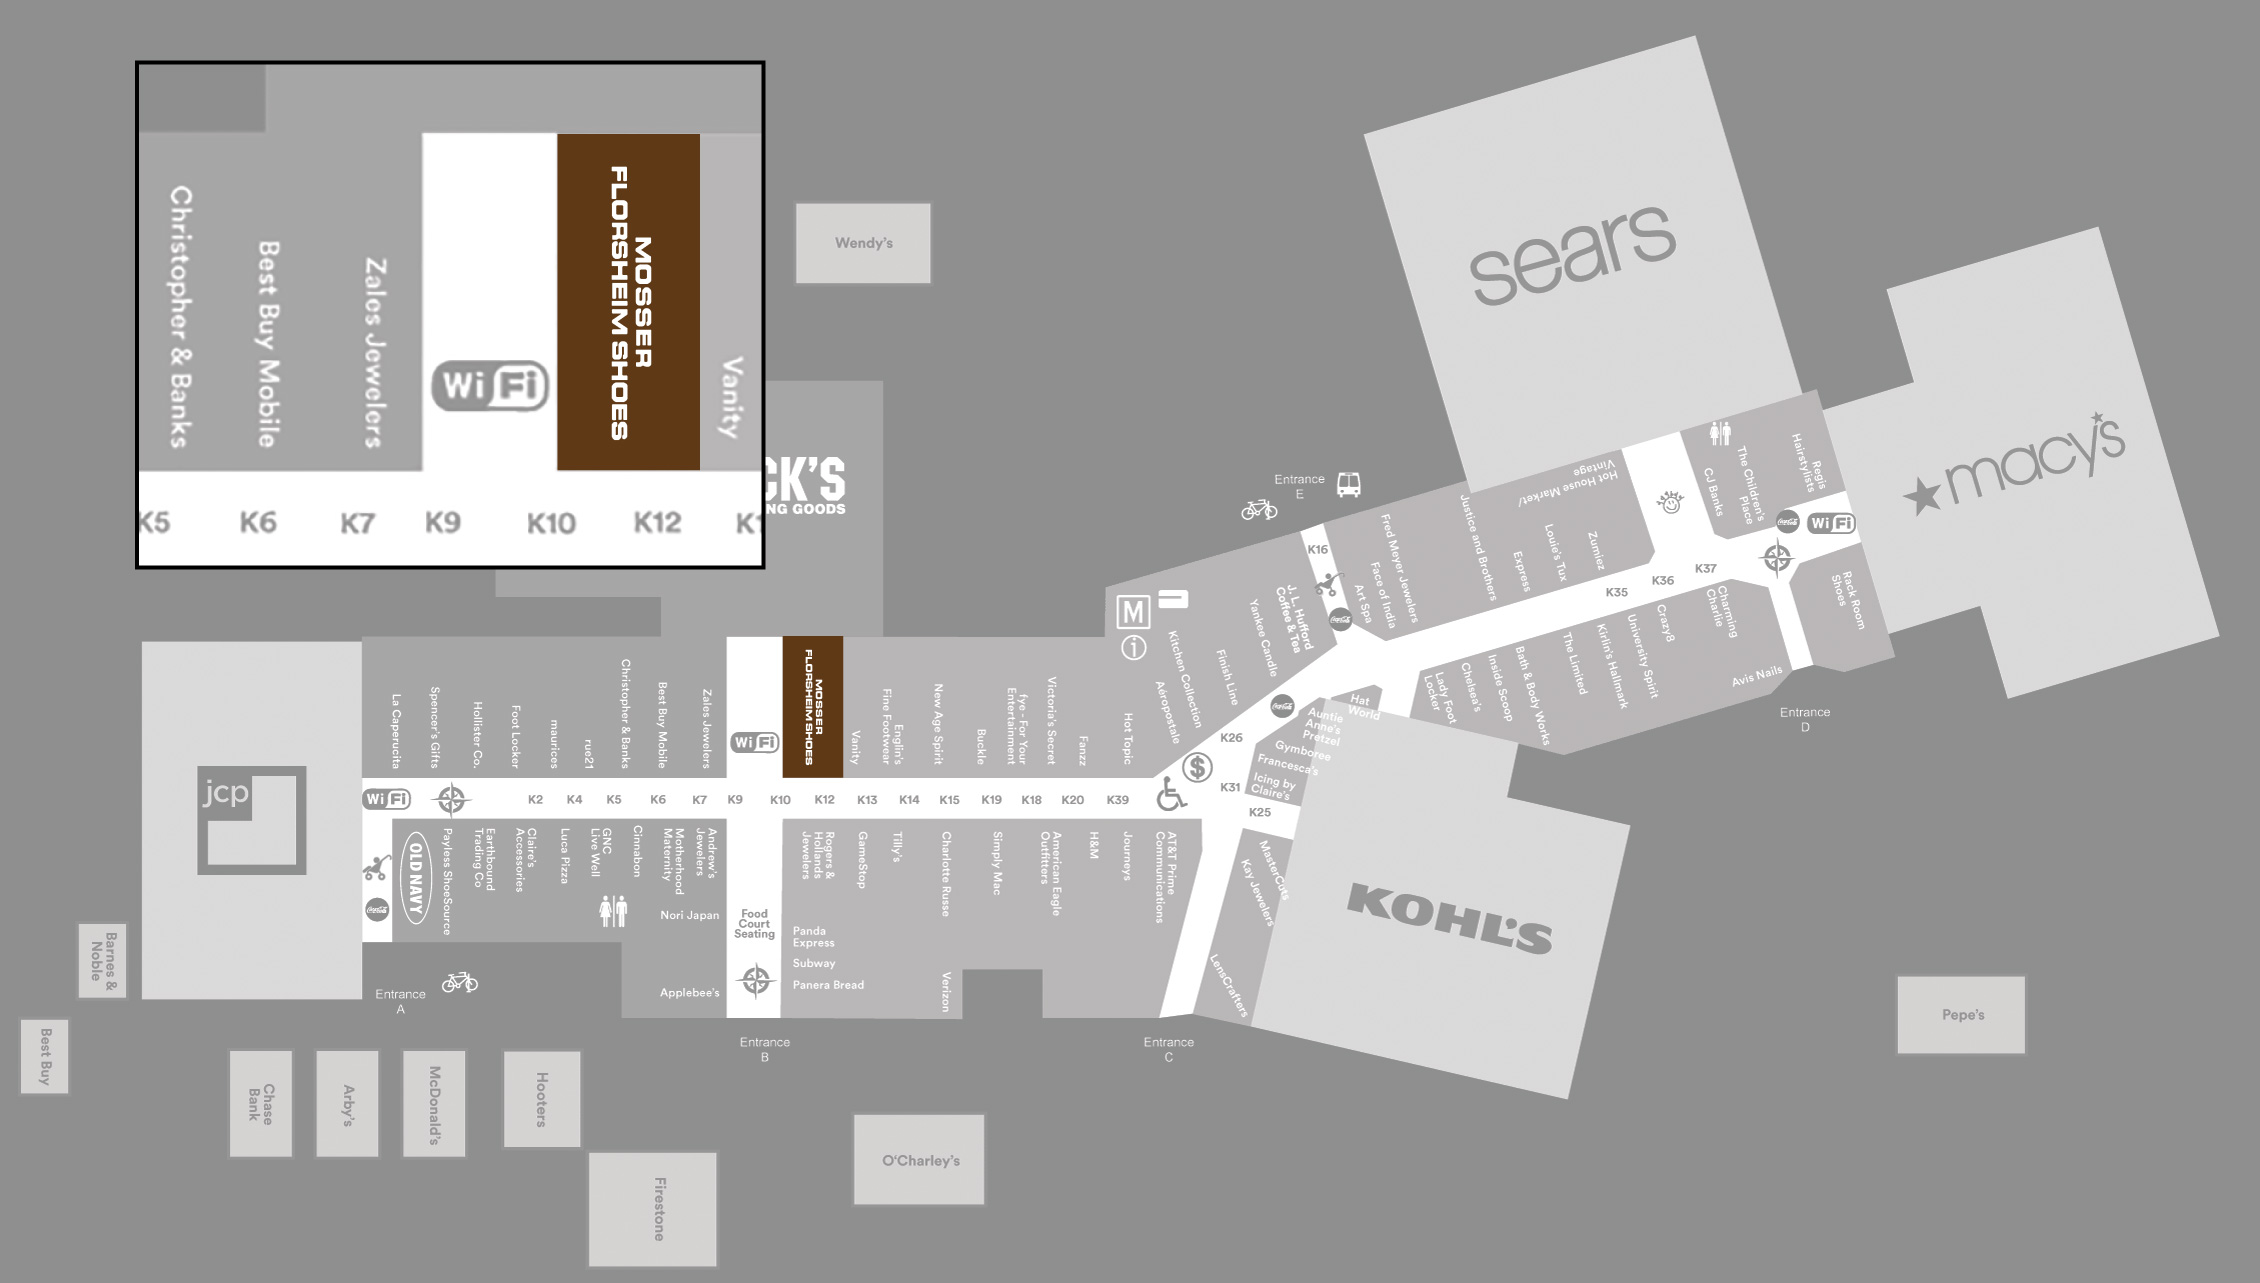 tippecanoe-mall-maps-location-mosser-1.1.jpg